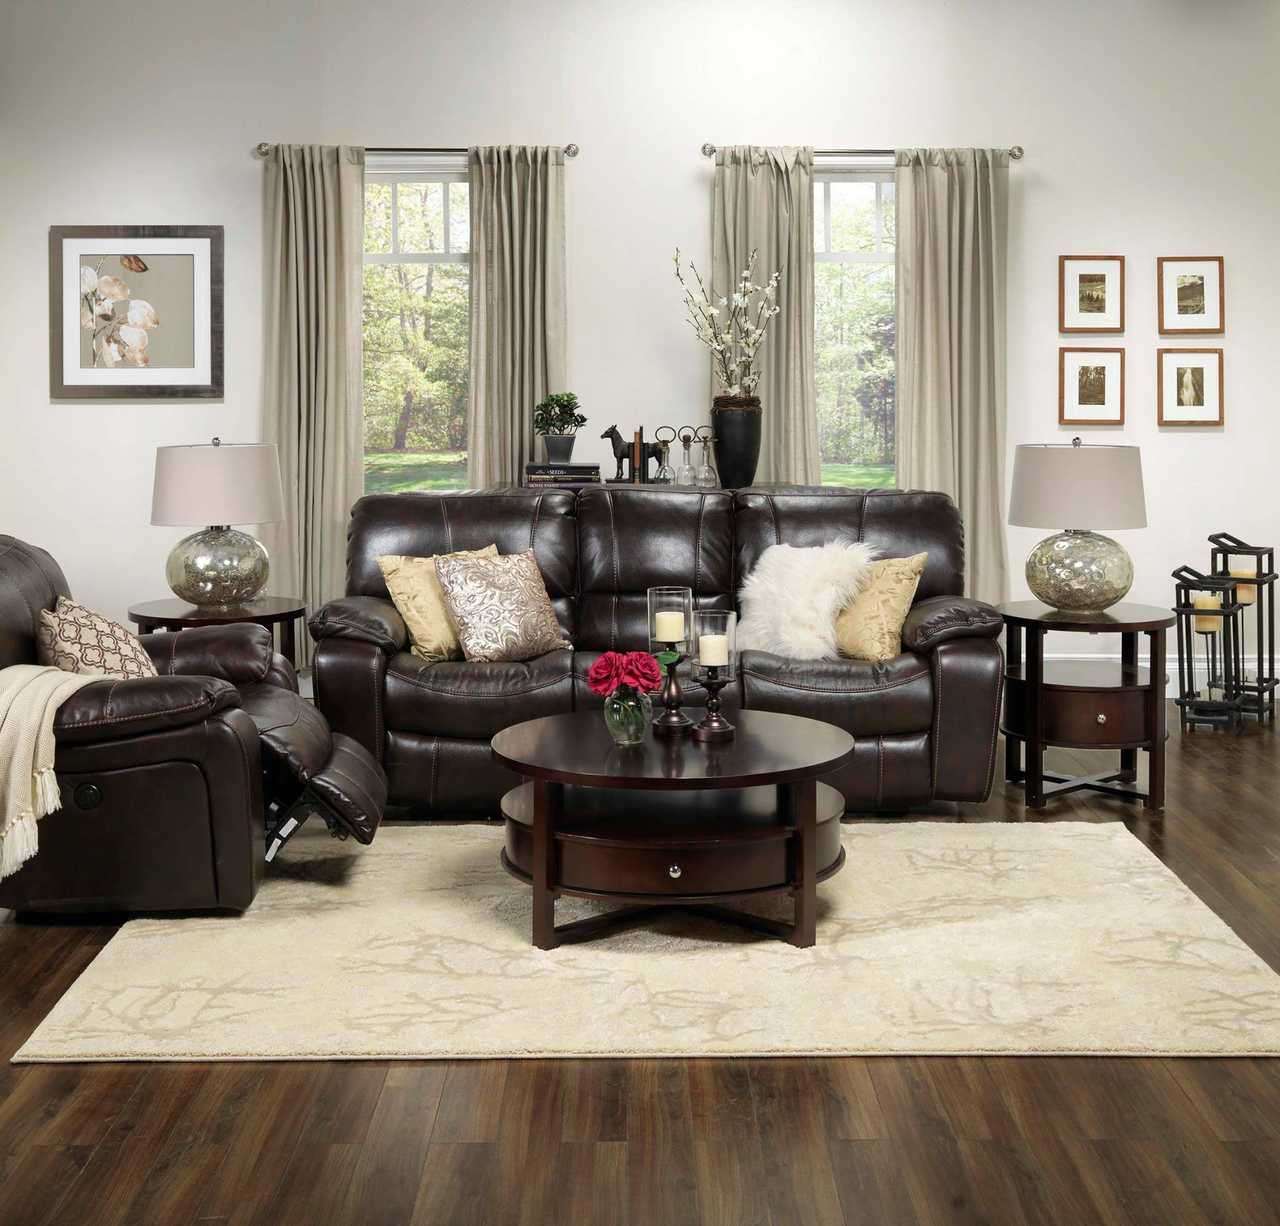 Leon's Furniture - Shopping - Furniture in Kitchener ON